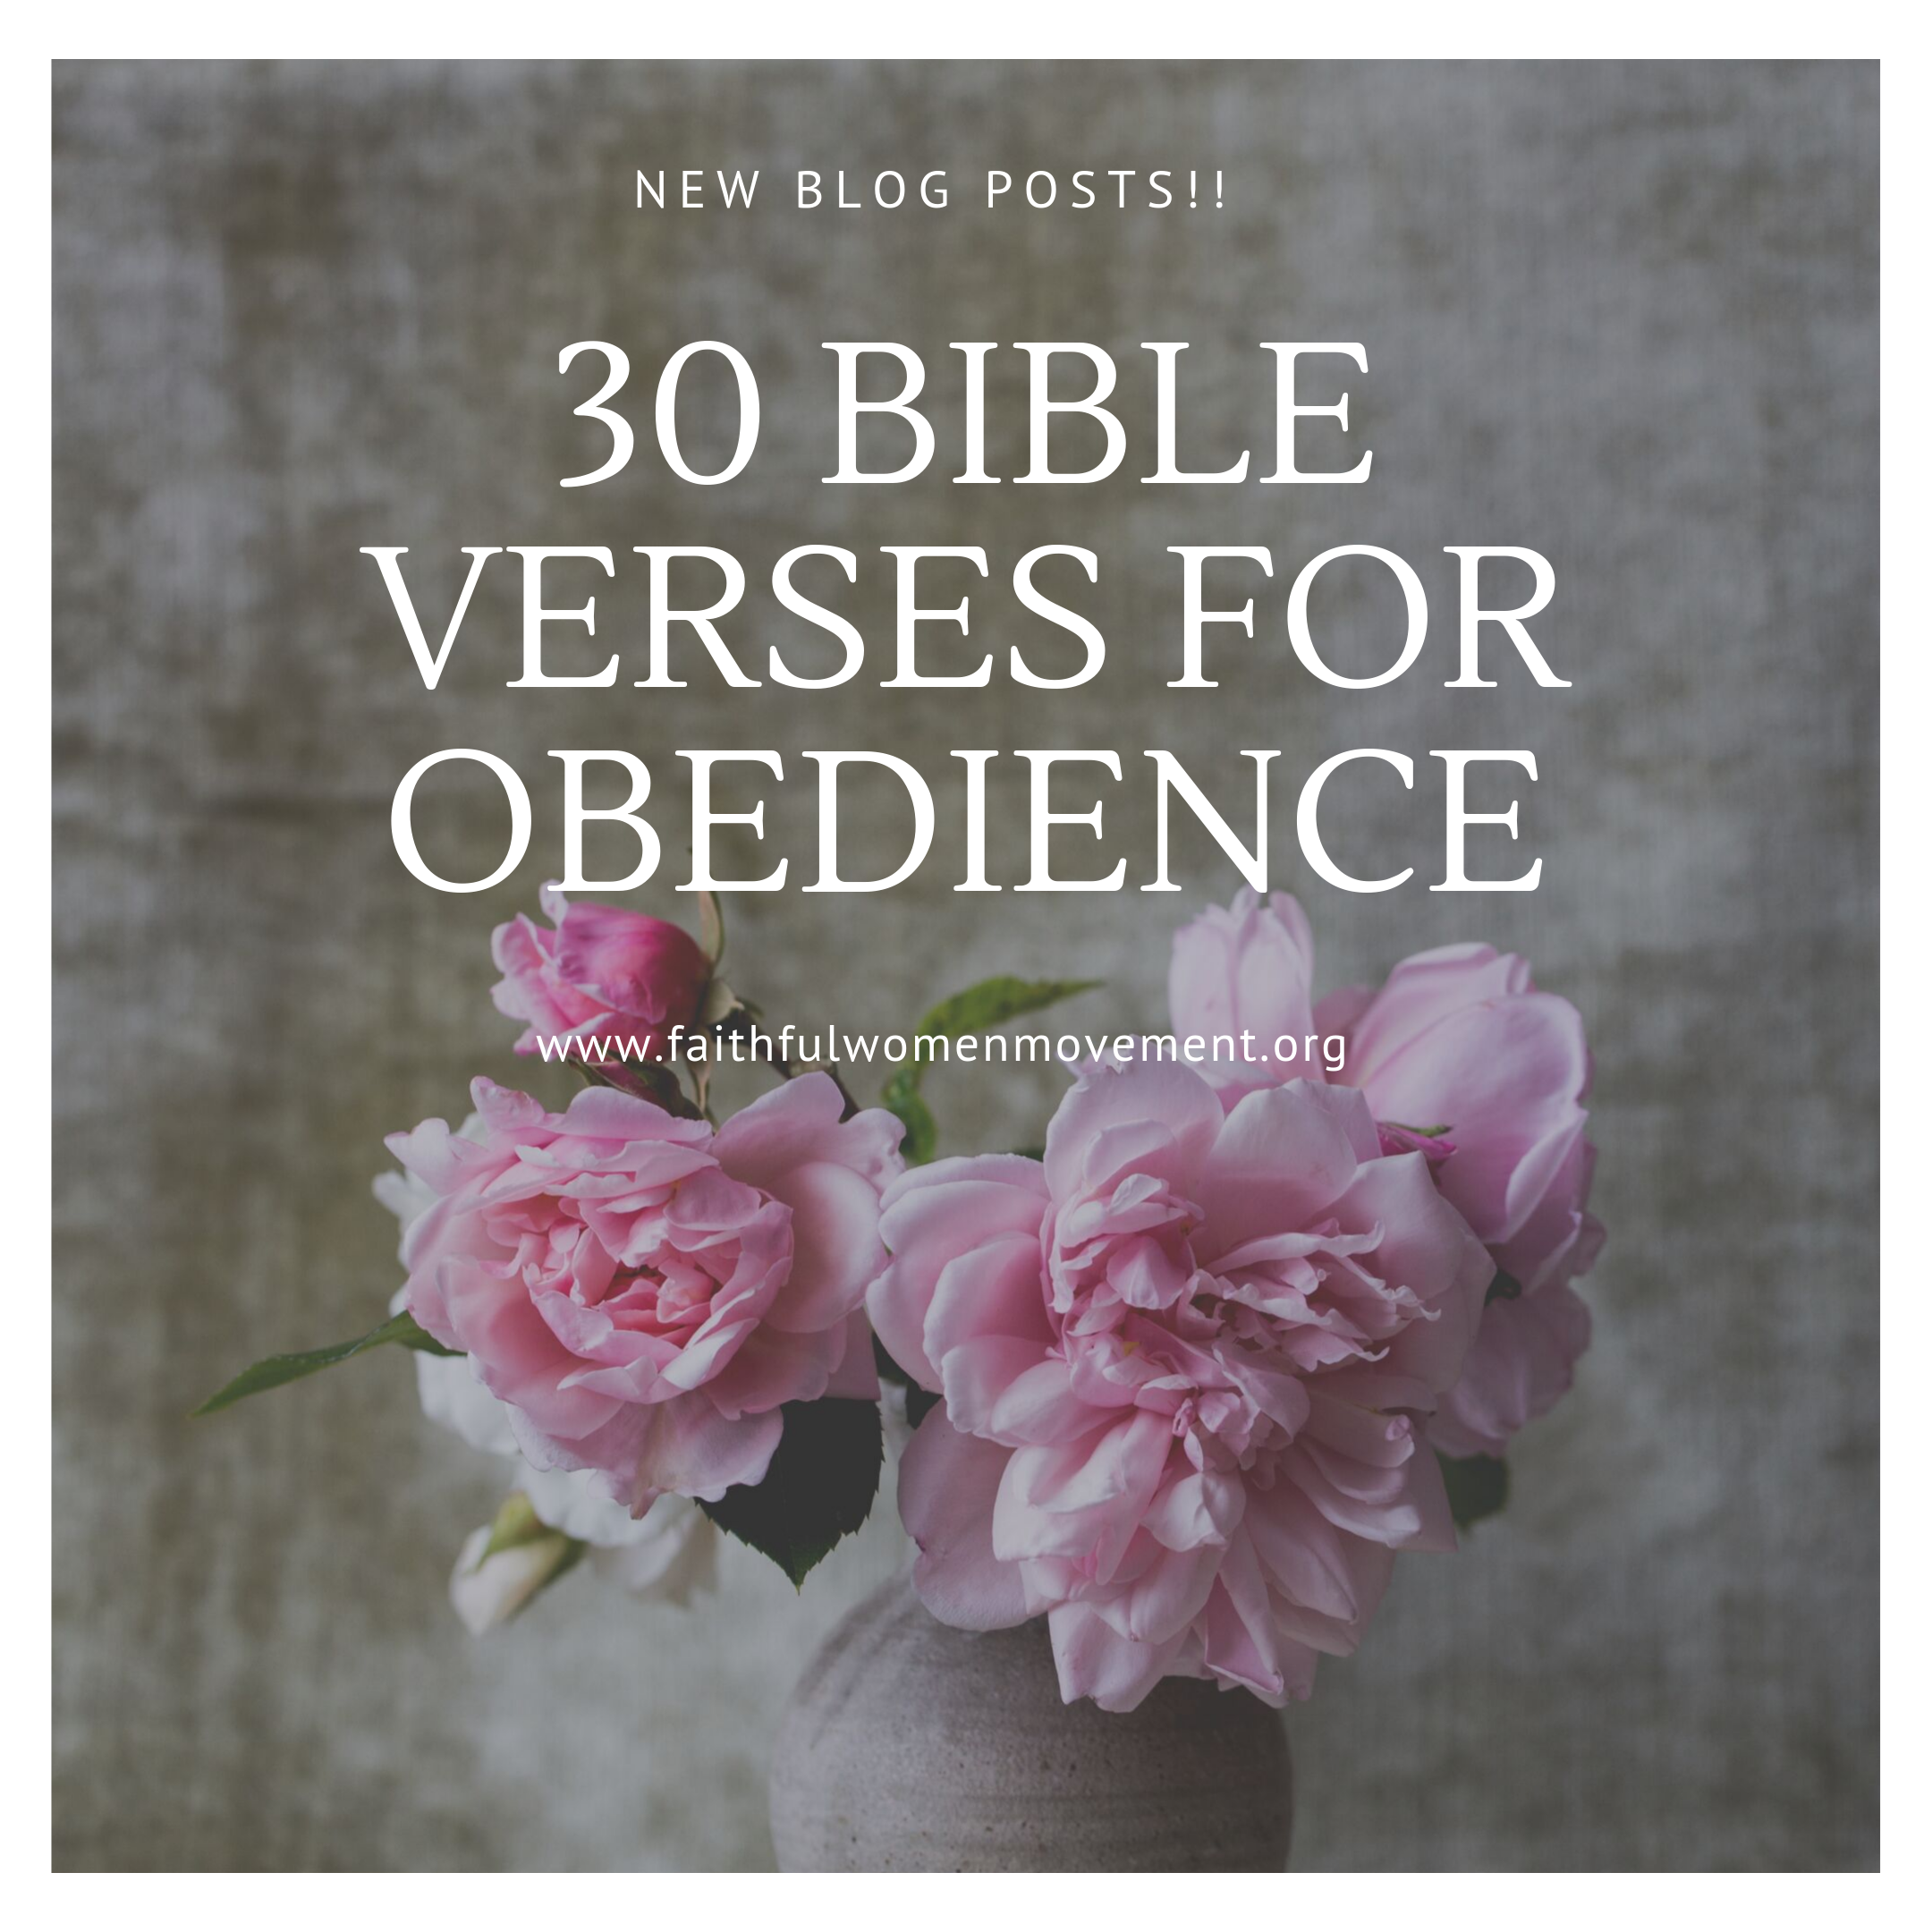 30 Bible Verses for Obedience